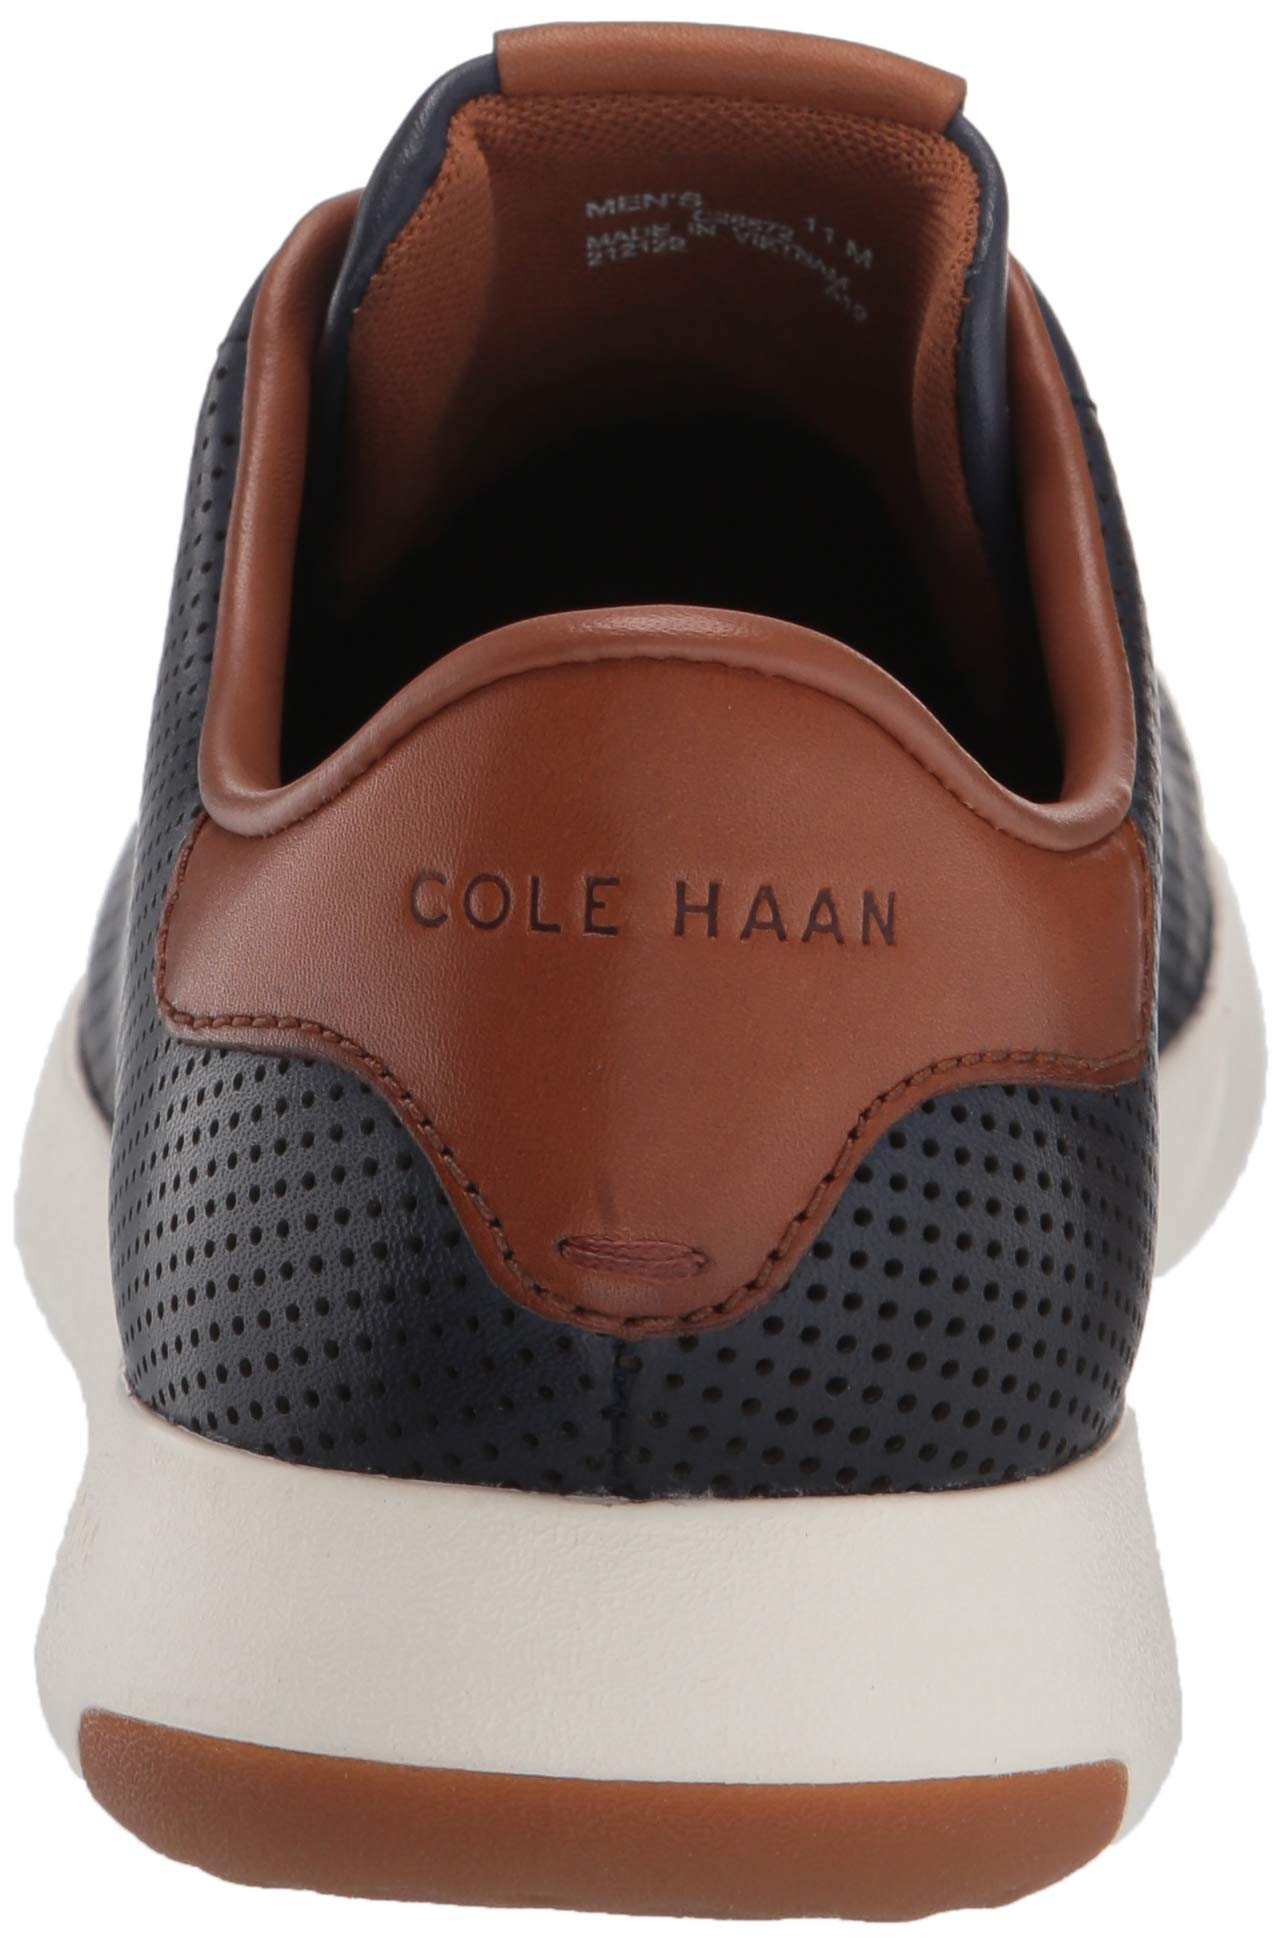 Cole Haan Mens Grandpro Tennis Sneaker 7 Navy Handstained Leather by Cole Haan (Image #2)